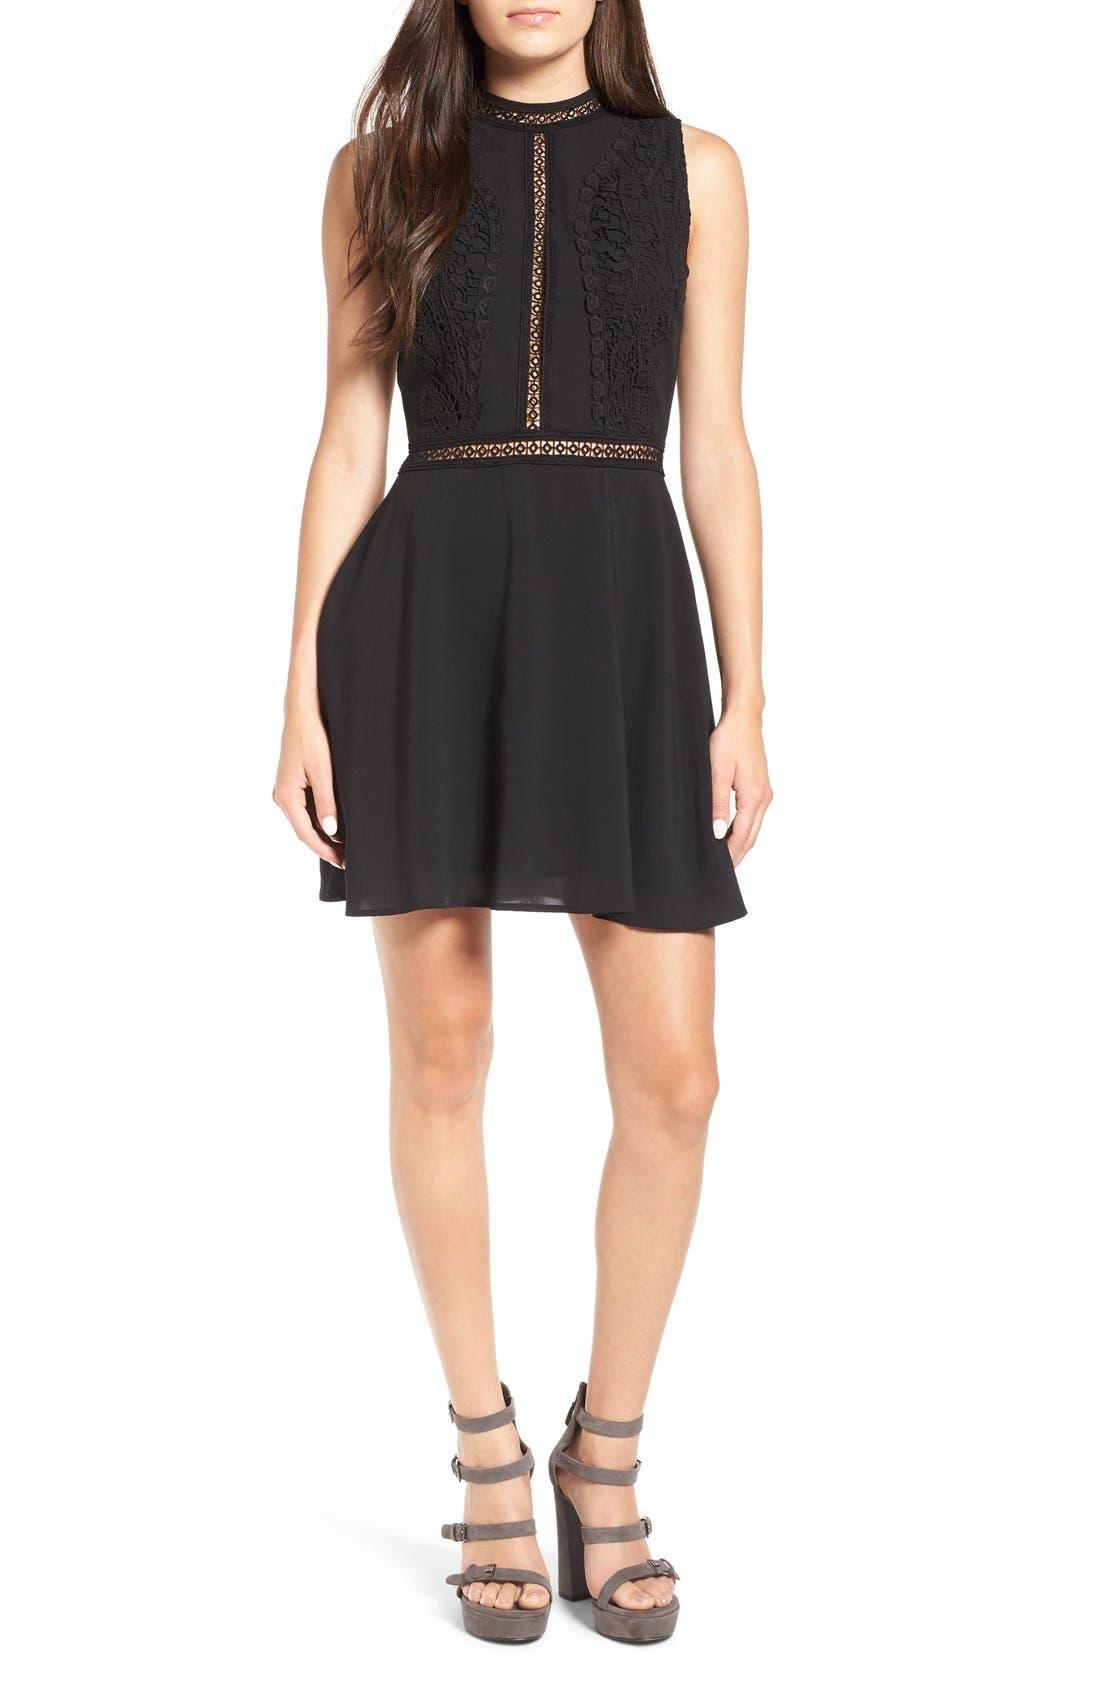 Alternate Image 1 Selected - Storee Crochet Lace Fit & Flare Dress